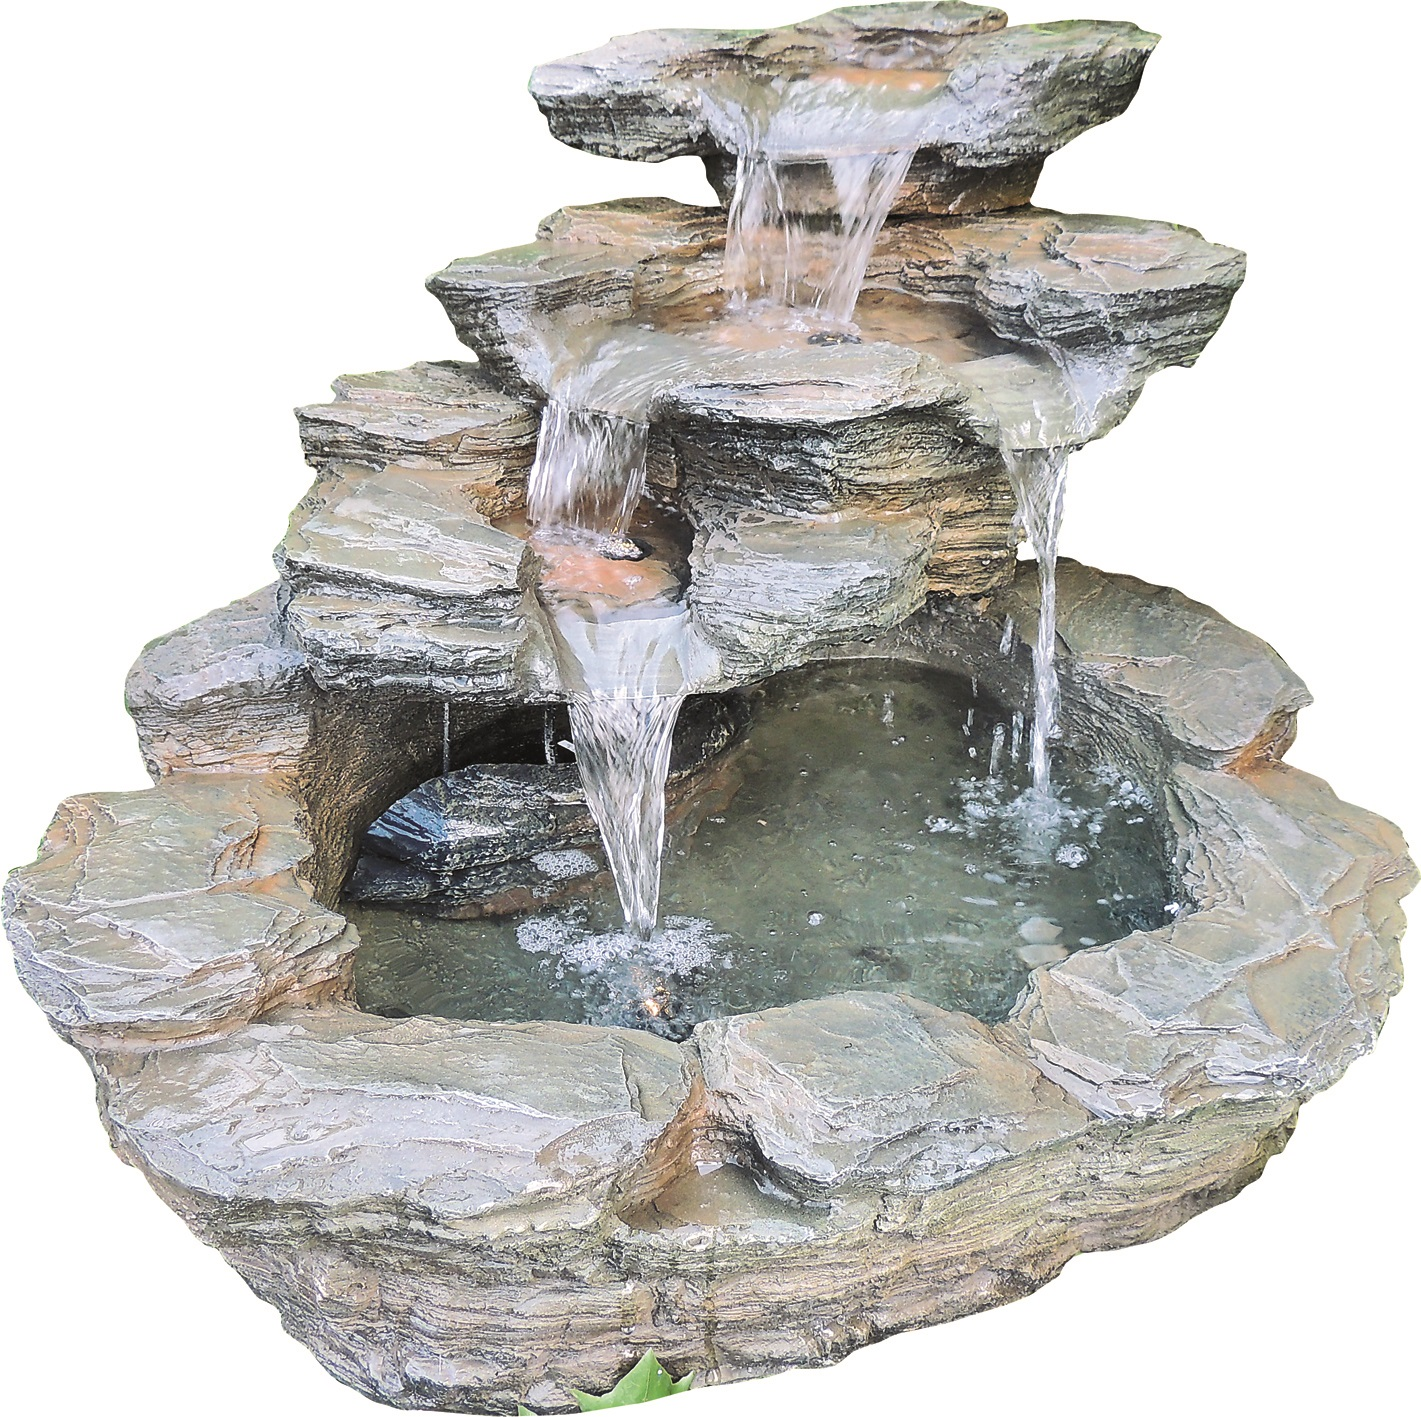 zierbrunnen zugo polystone wasserfall wasserspiel inkl. Black Bedroom Furniture Sets. Home Design Ideas